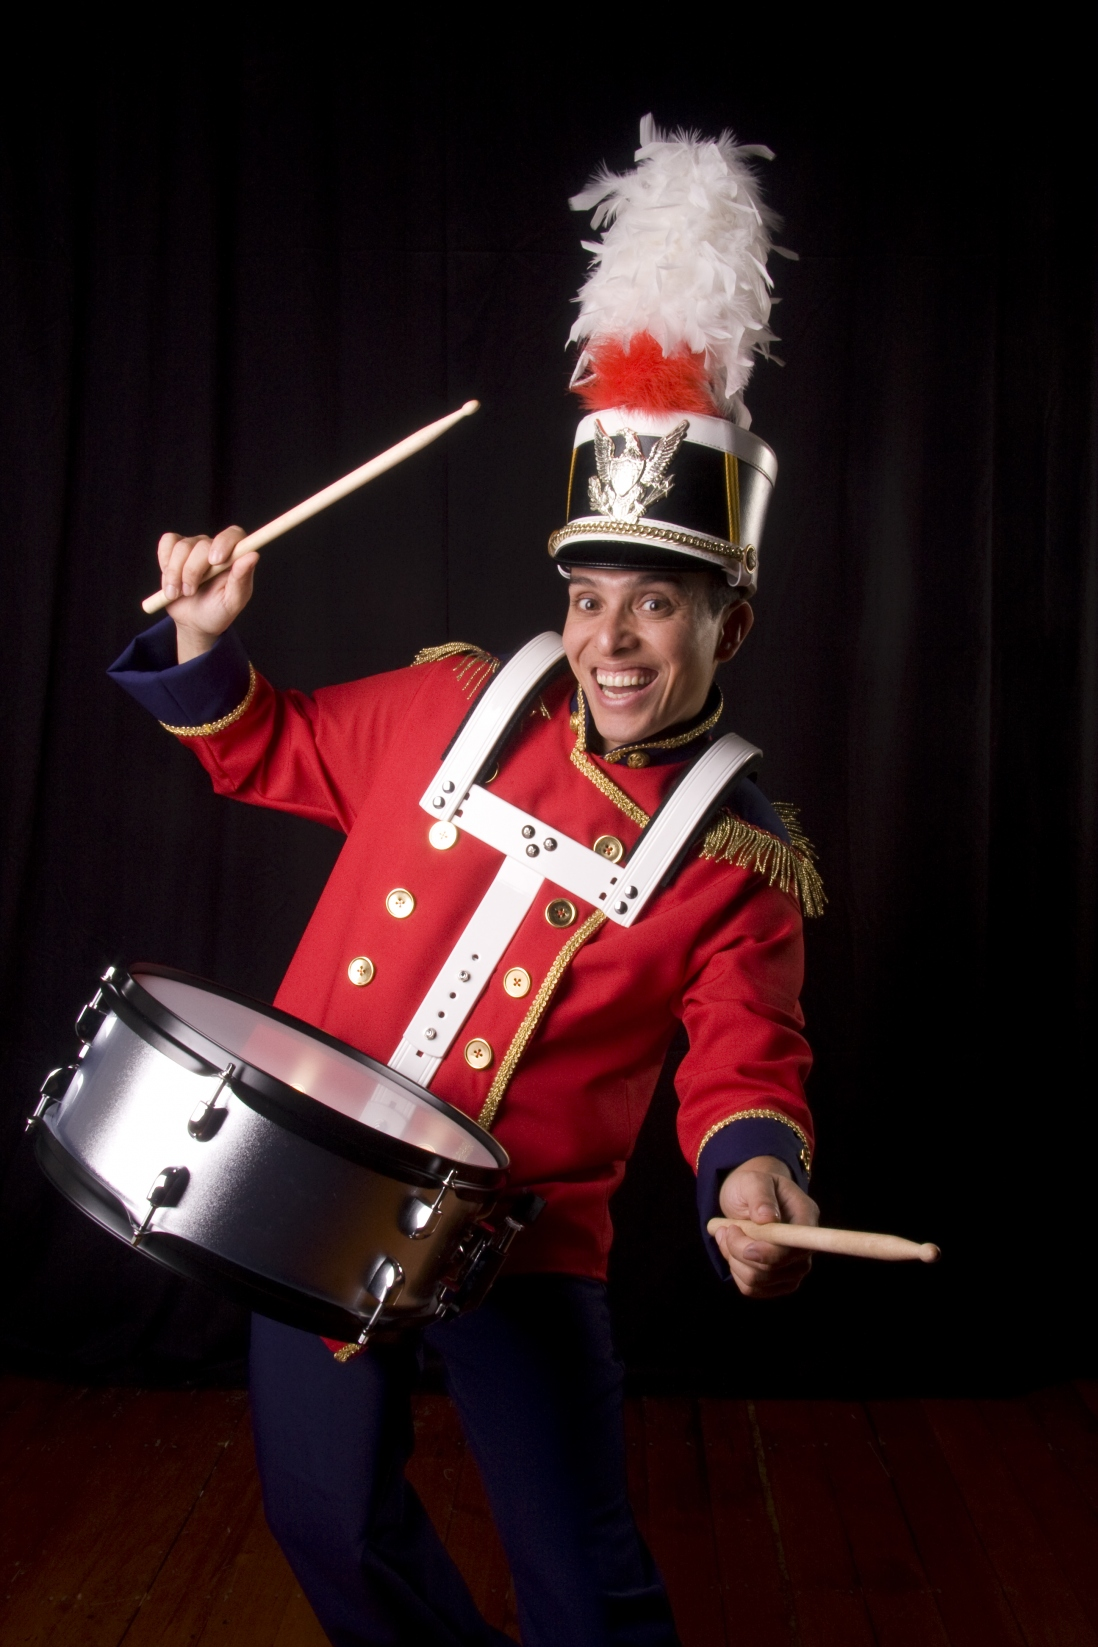 Man dressed as a toy soldier with drum